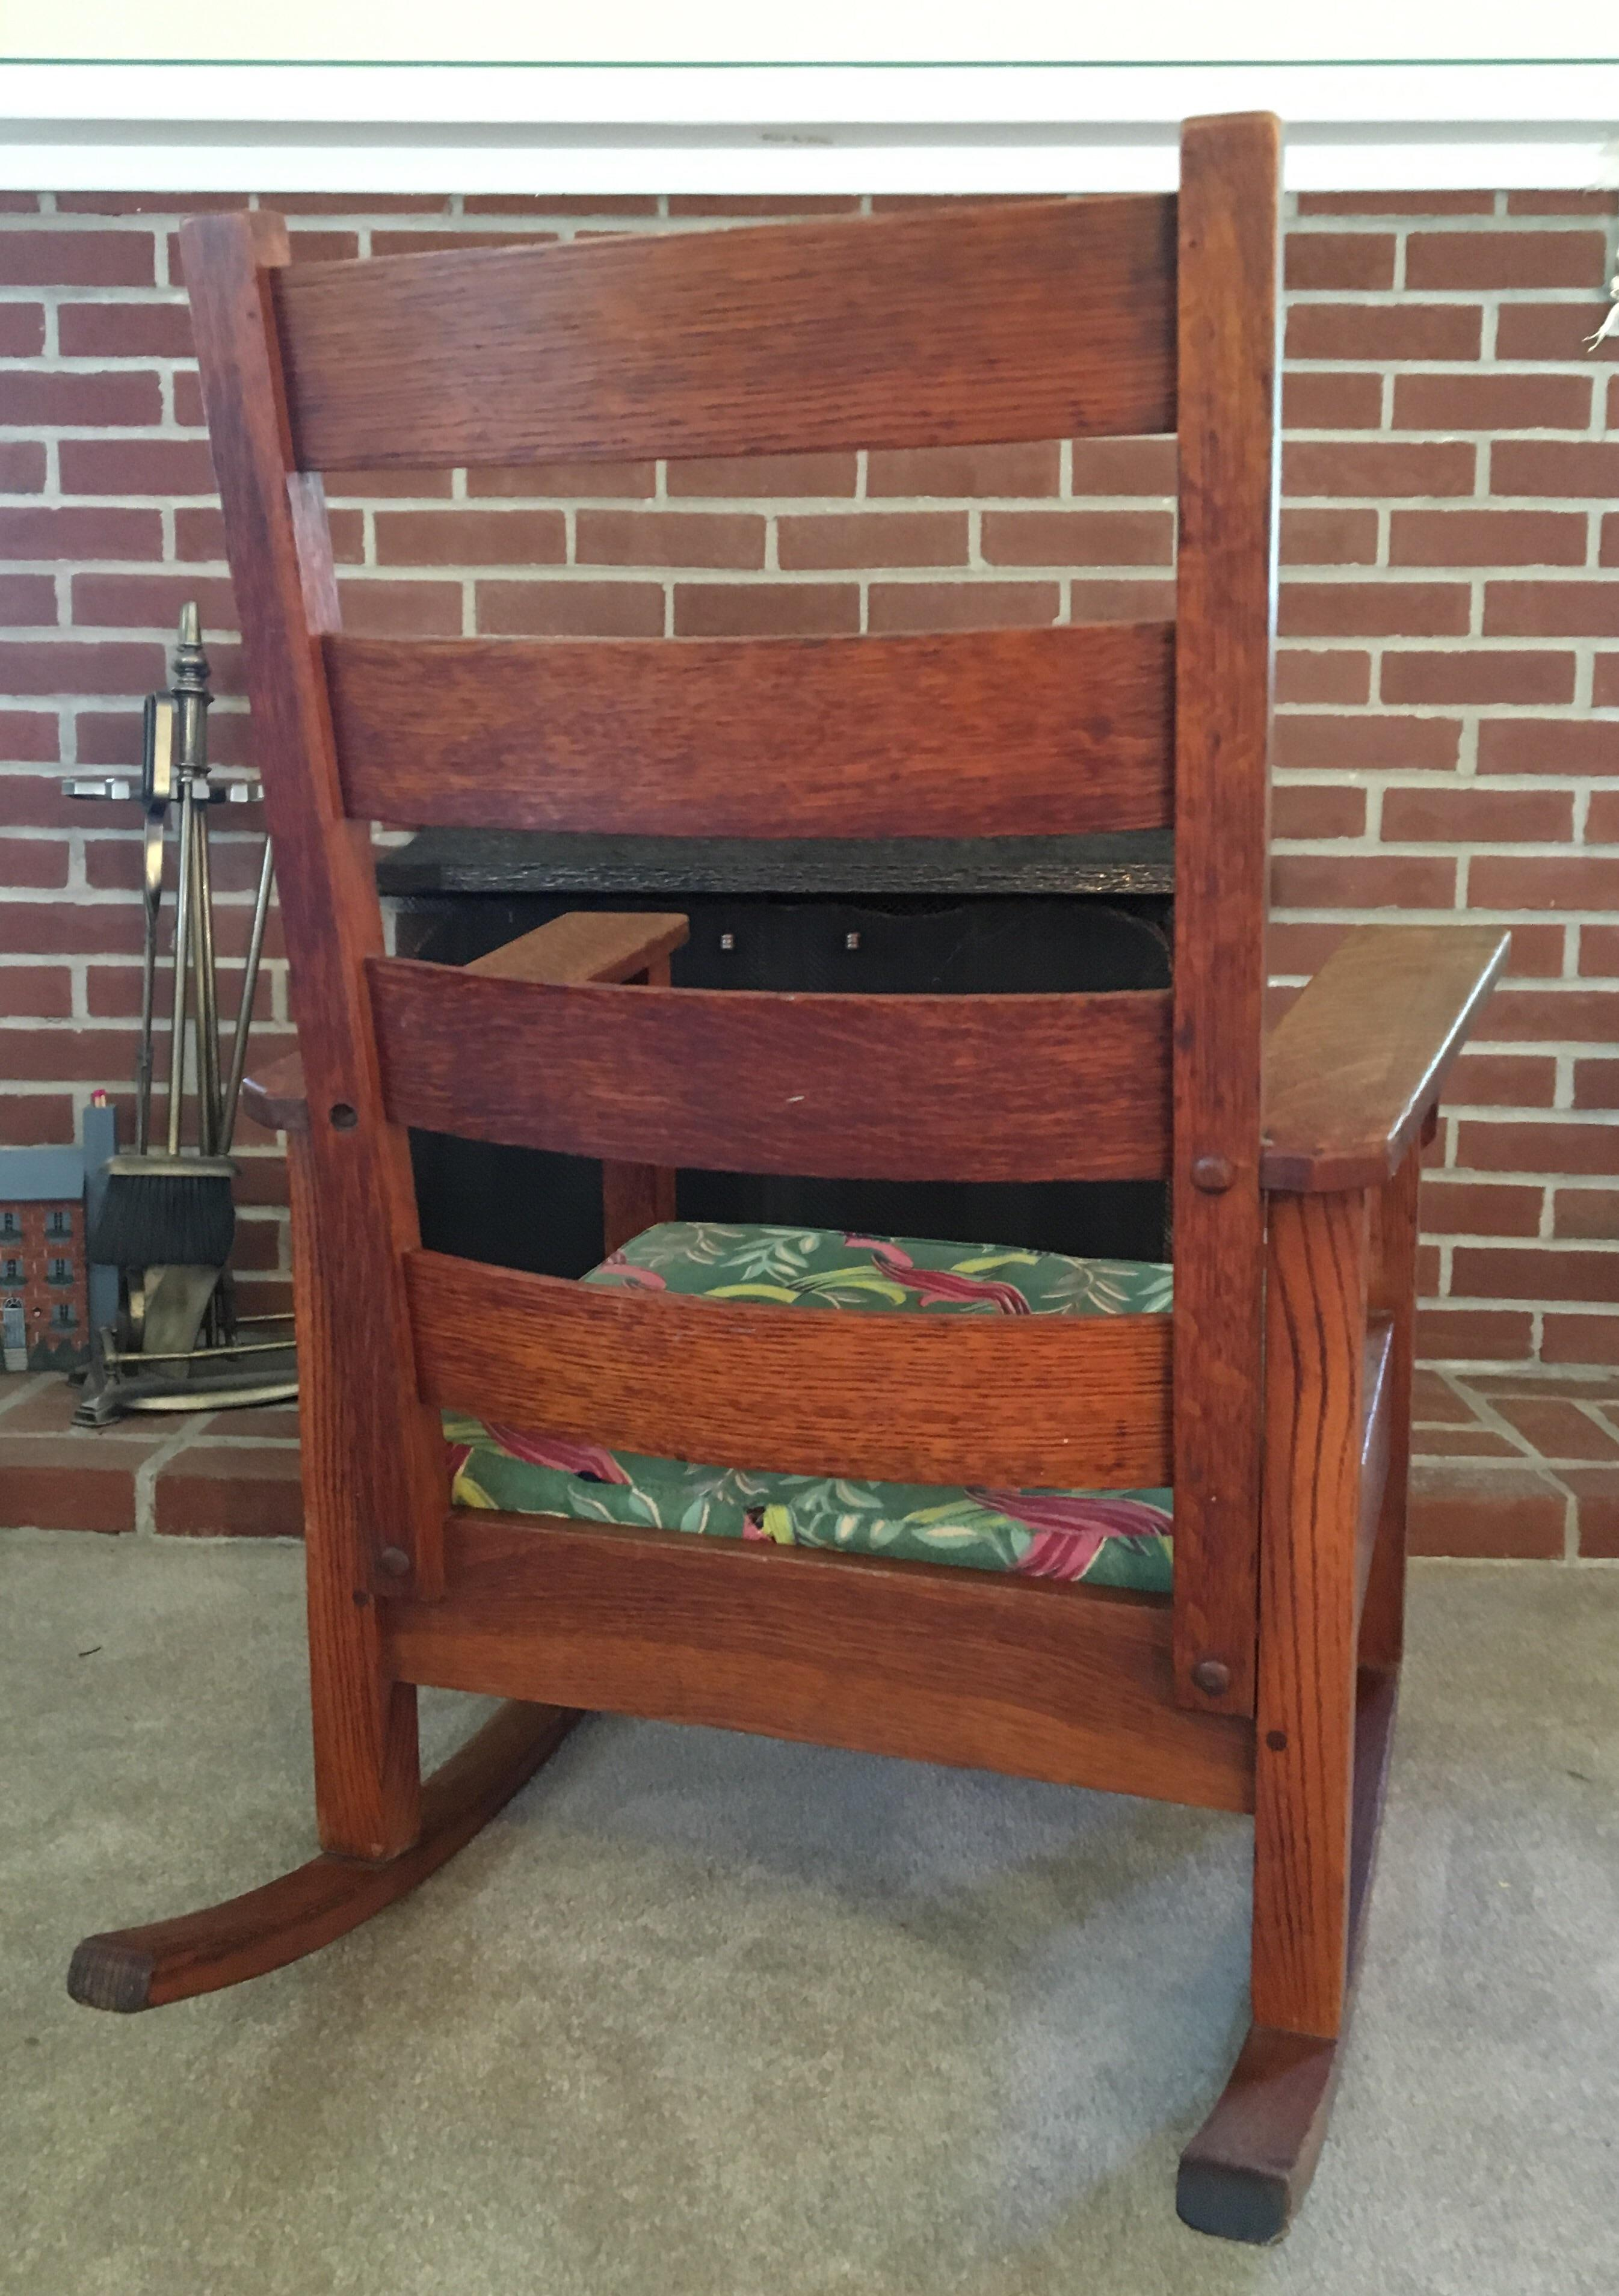 Stickley Mission Oak Rocking Chair - Image 3 of 11  sc 1 st  Chairish & Stickley Mission Oak Rocking Chair | Chairish